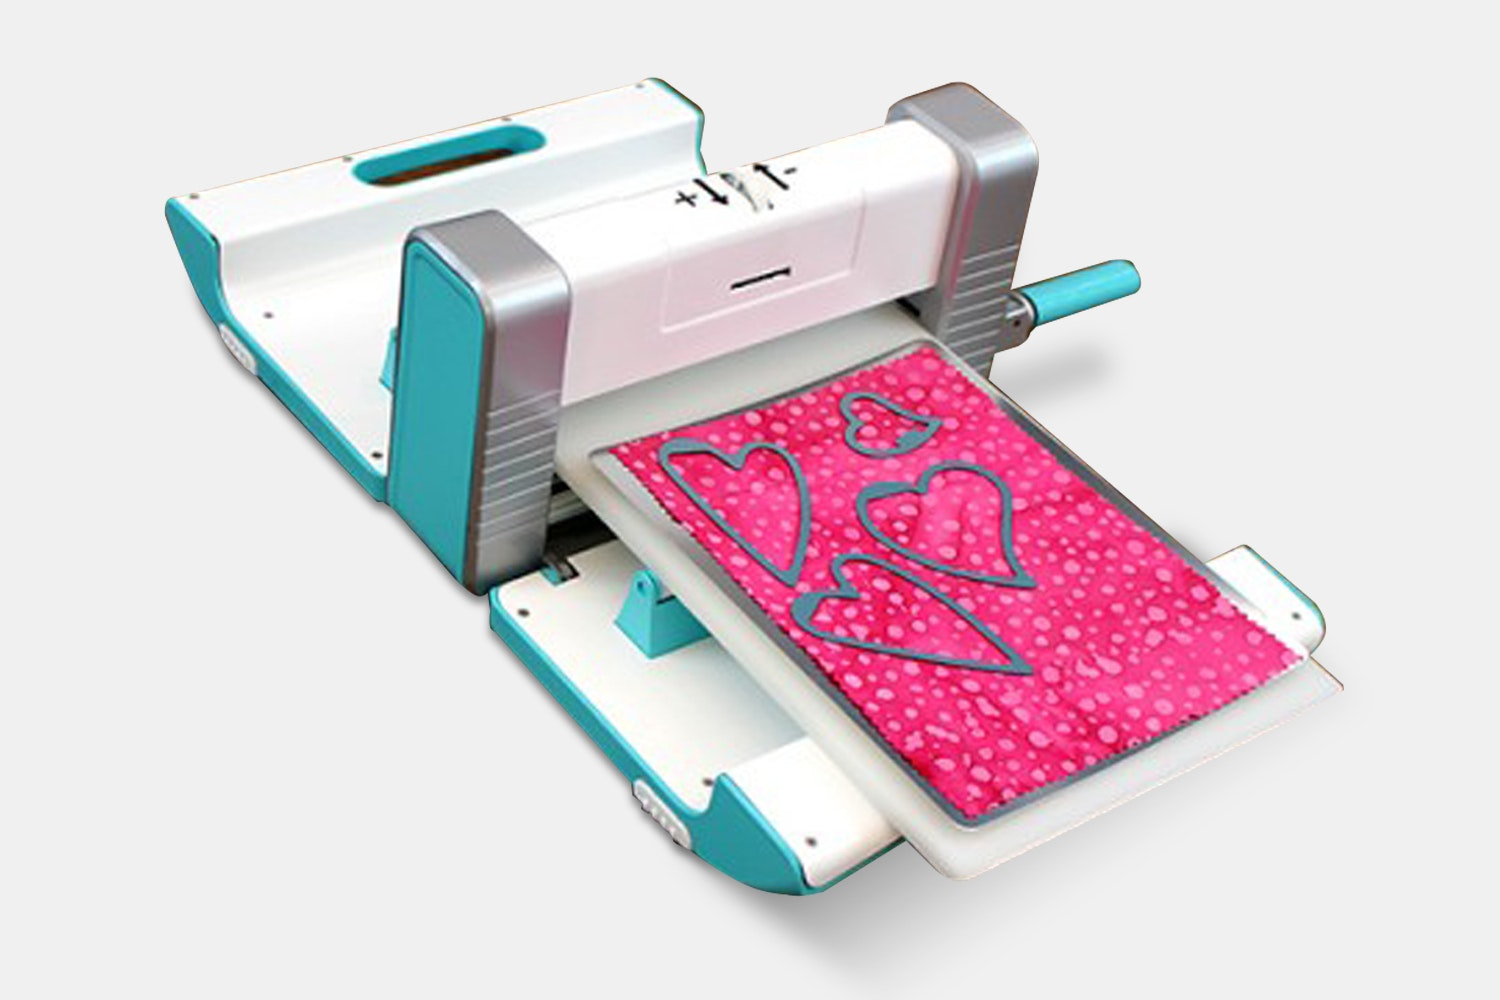 Crossover II Fabric & Paper Cutter